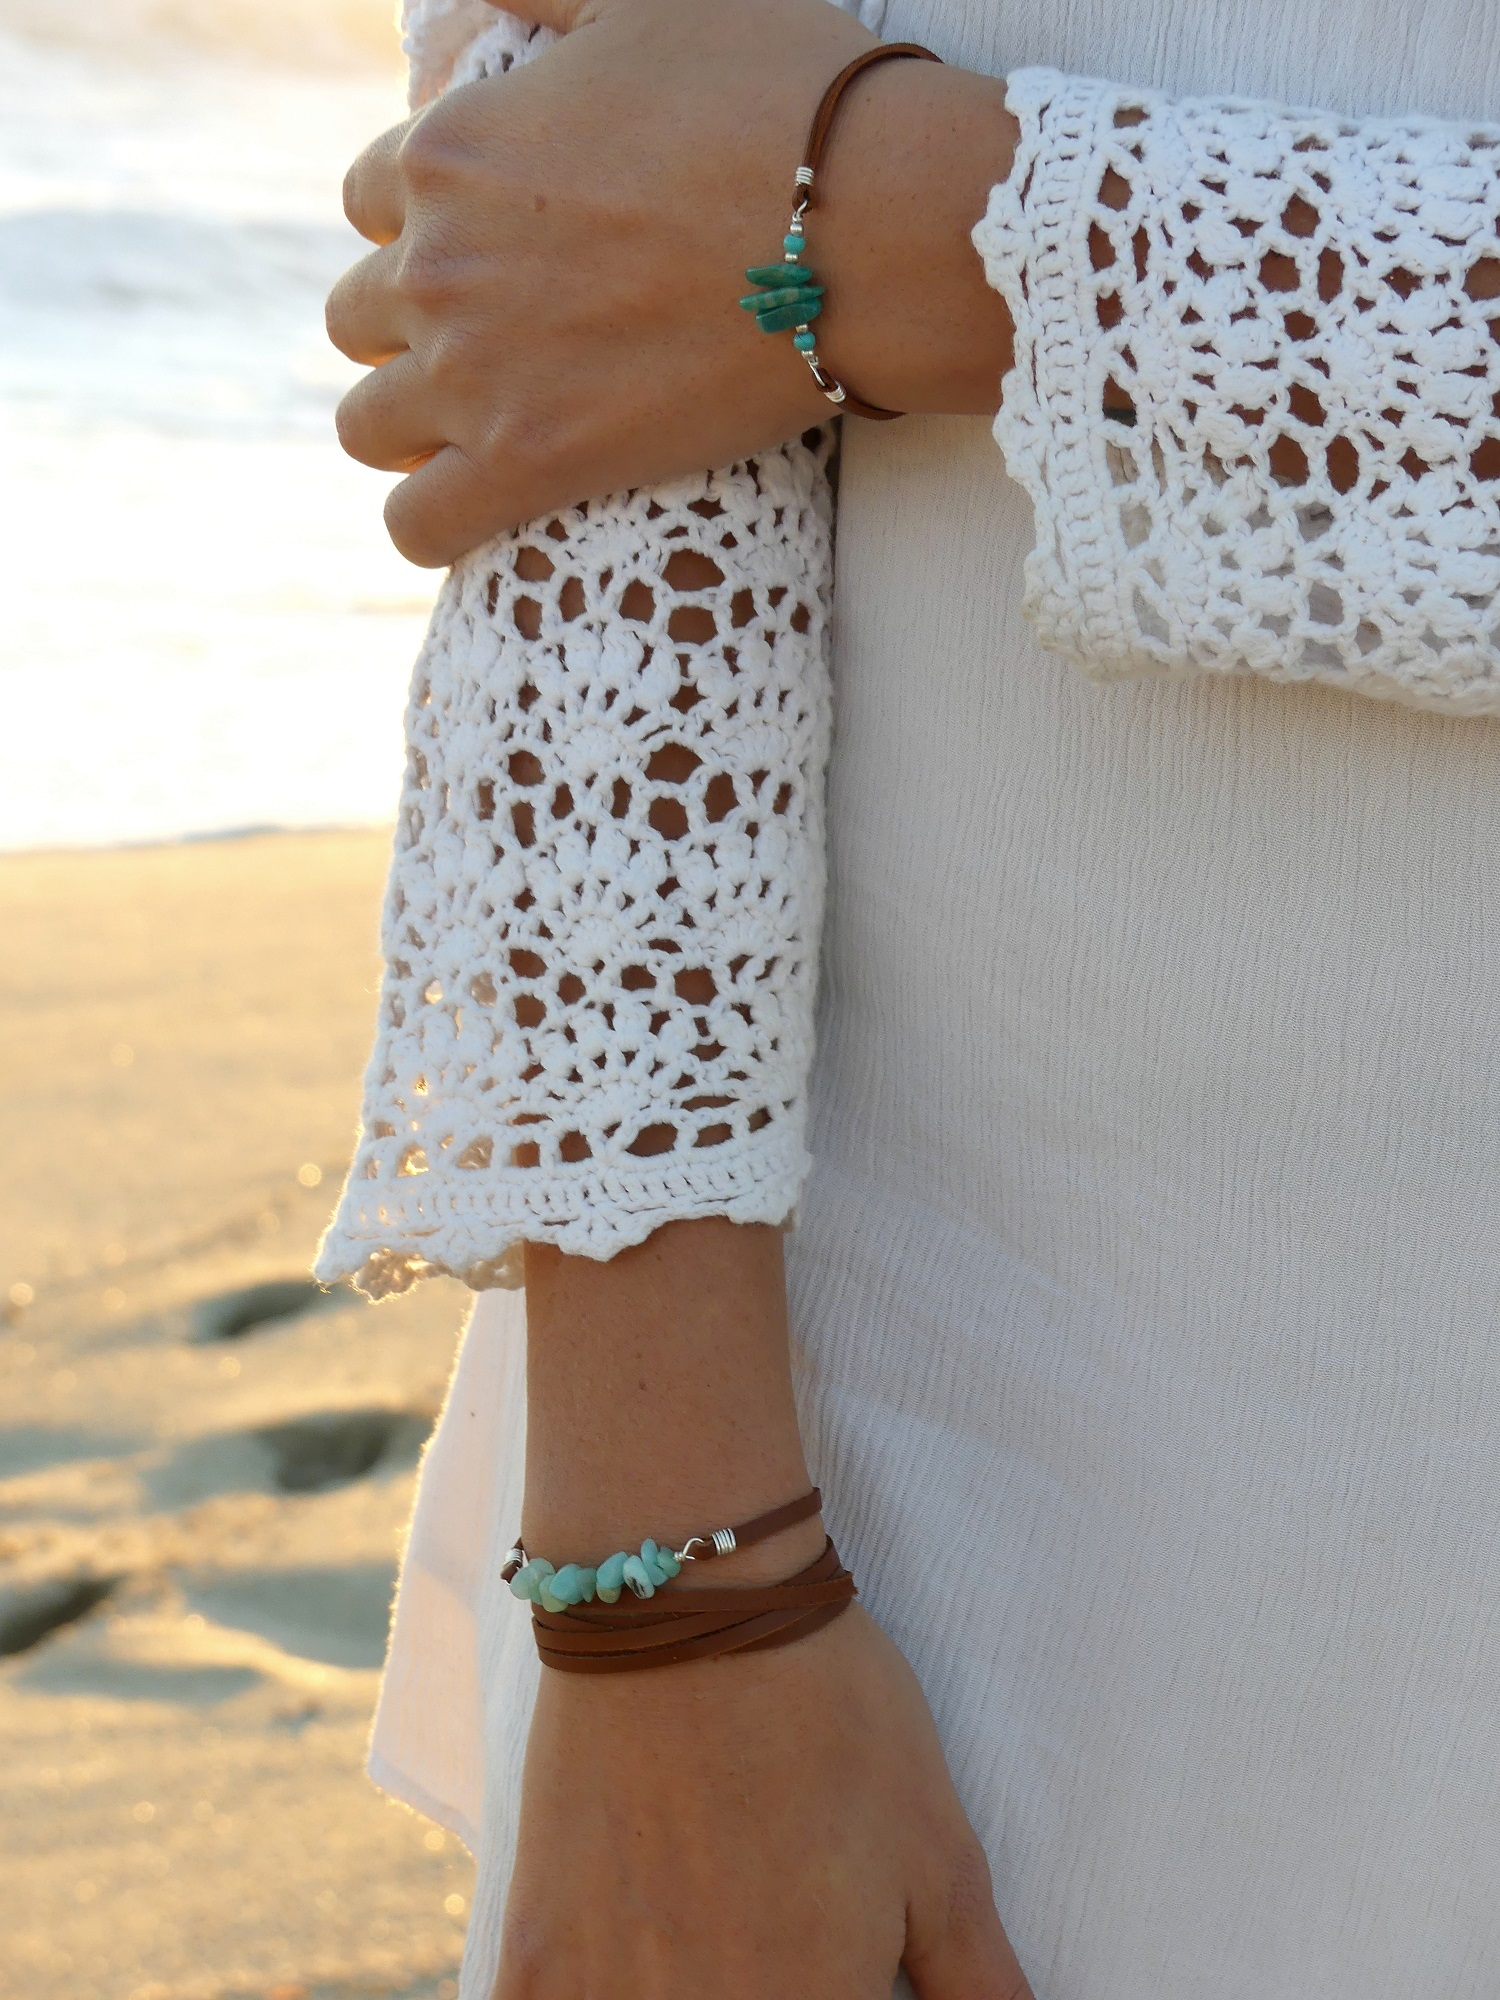 Autumn-mist-blog-two-in-the-sun-bracelets.JPG